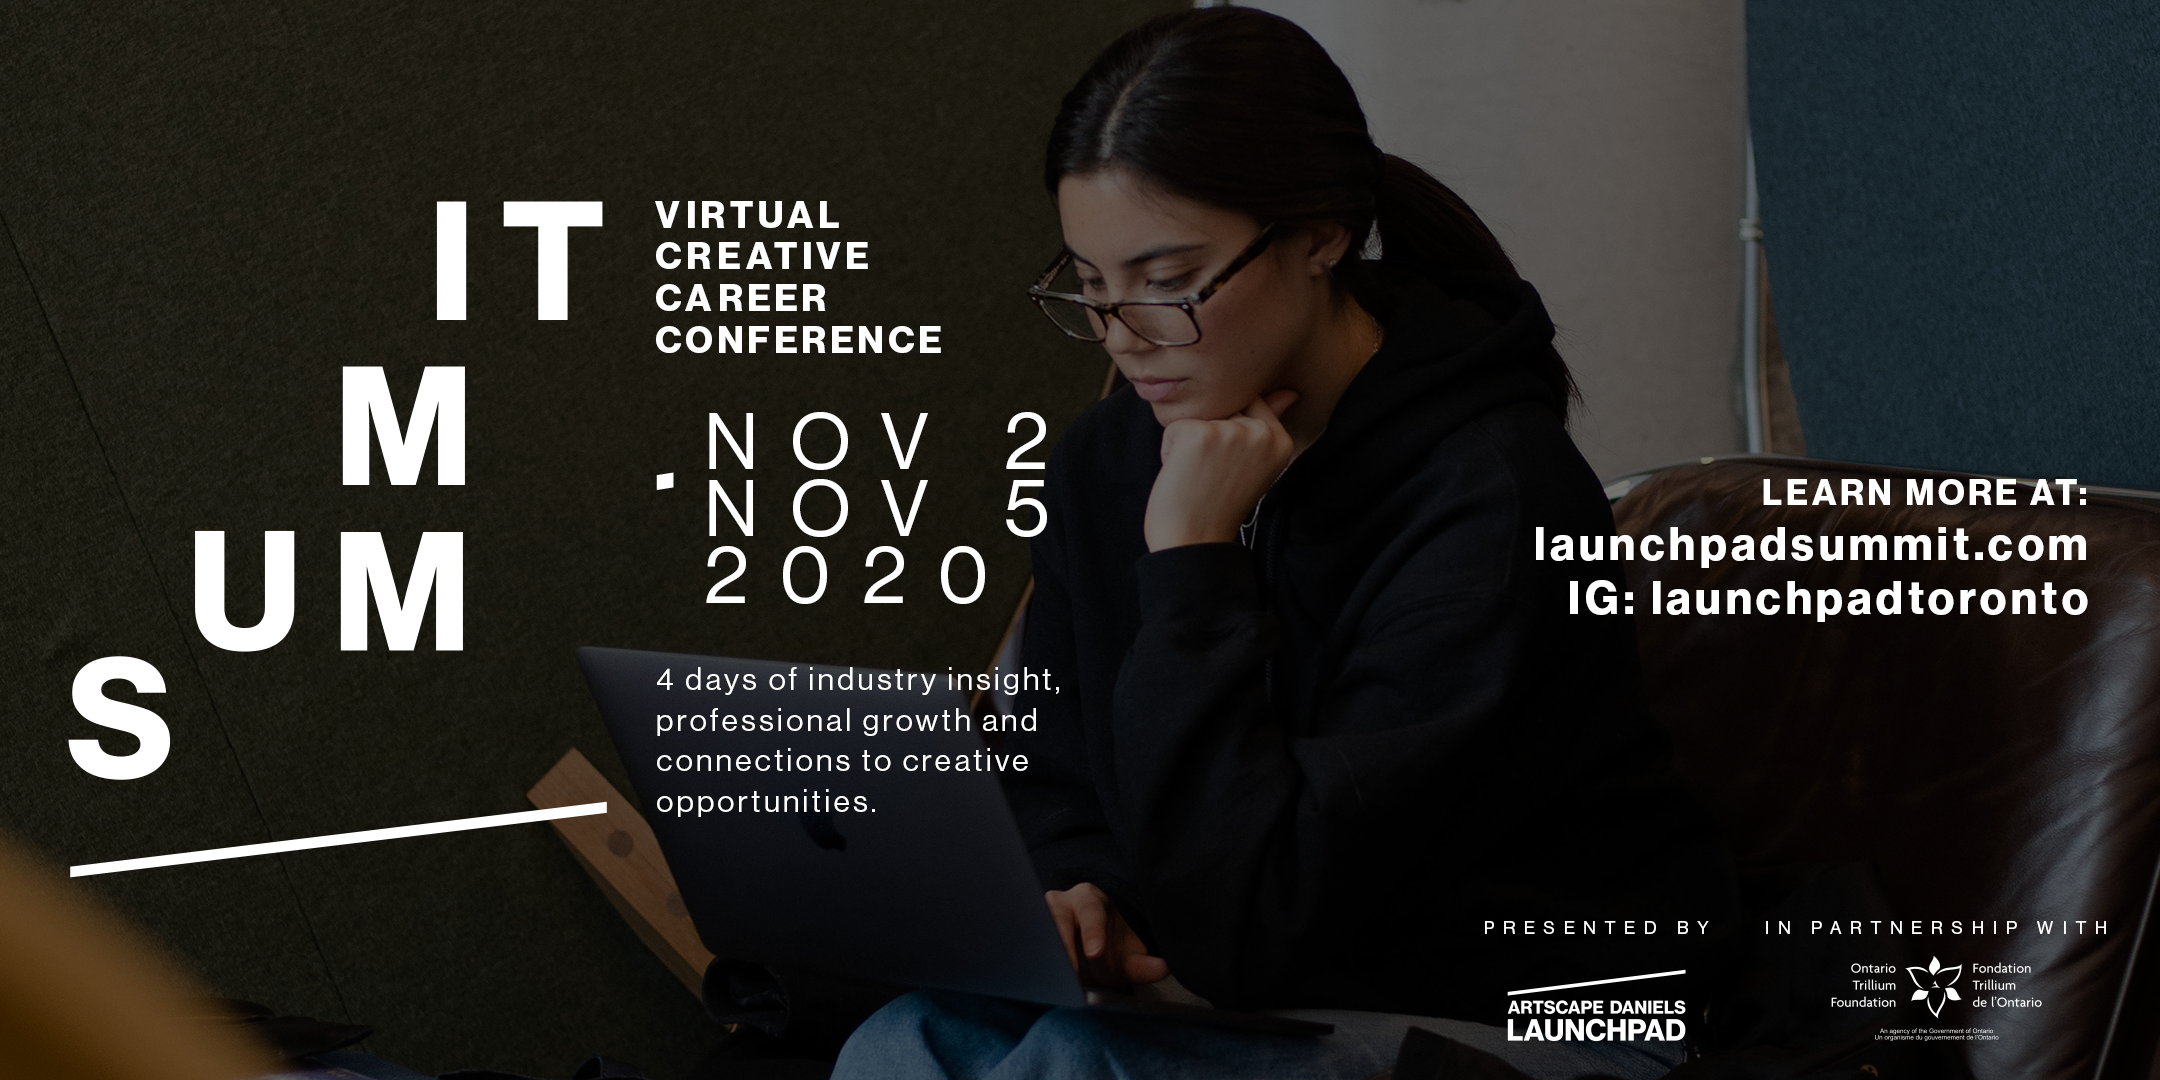 Launchpad SUMMIT Returns With A 4-day Pay-what-you-can Virtual Creative Career Conference